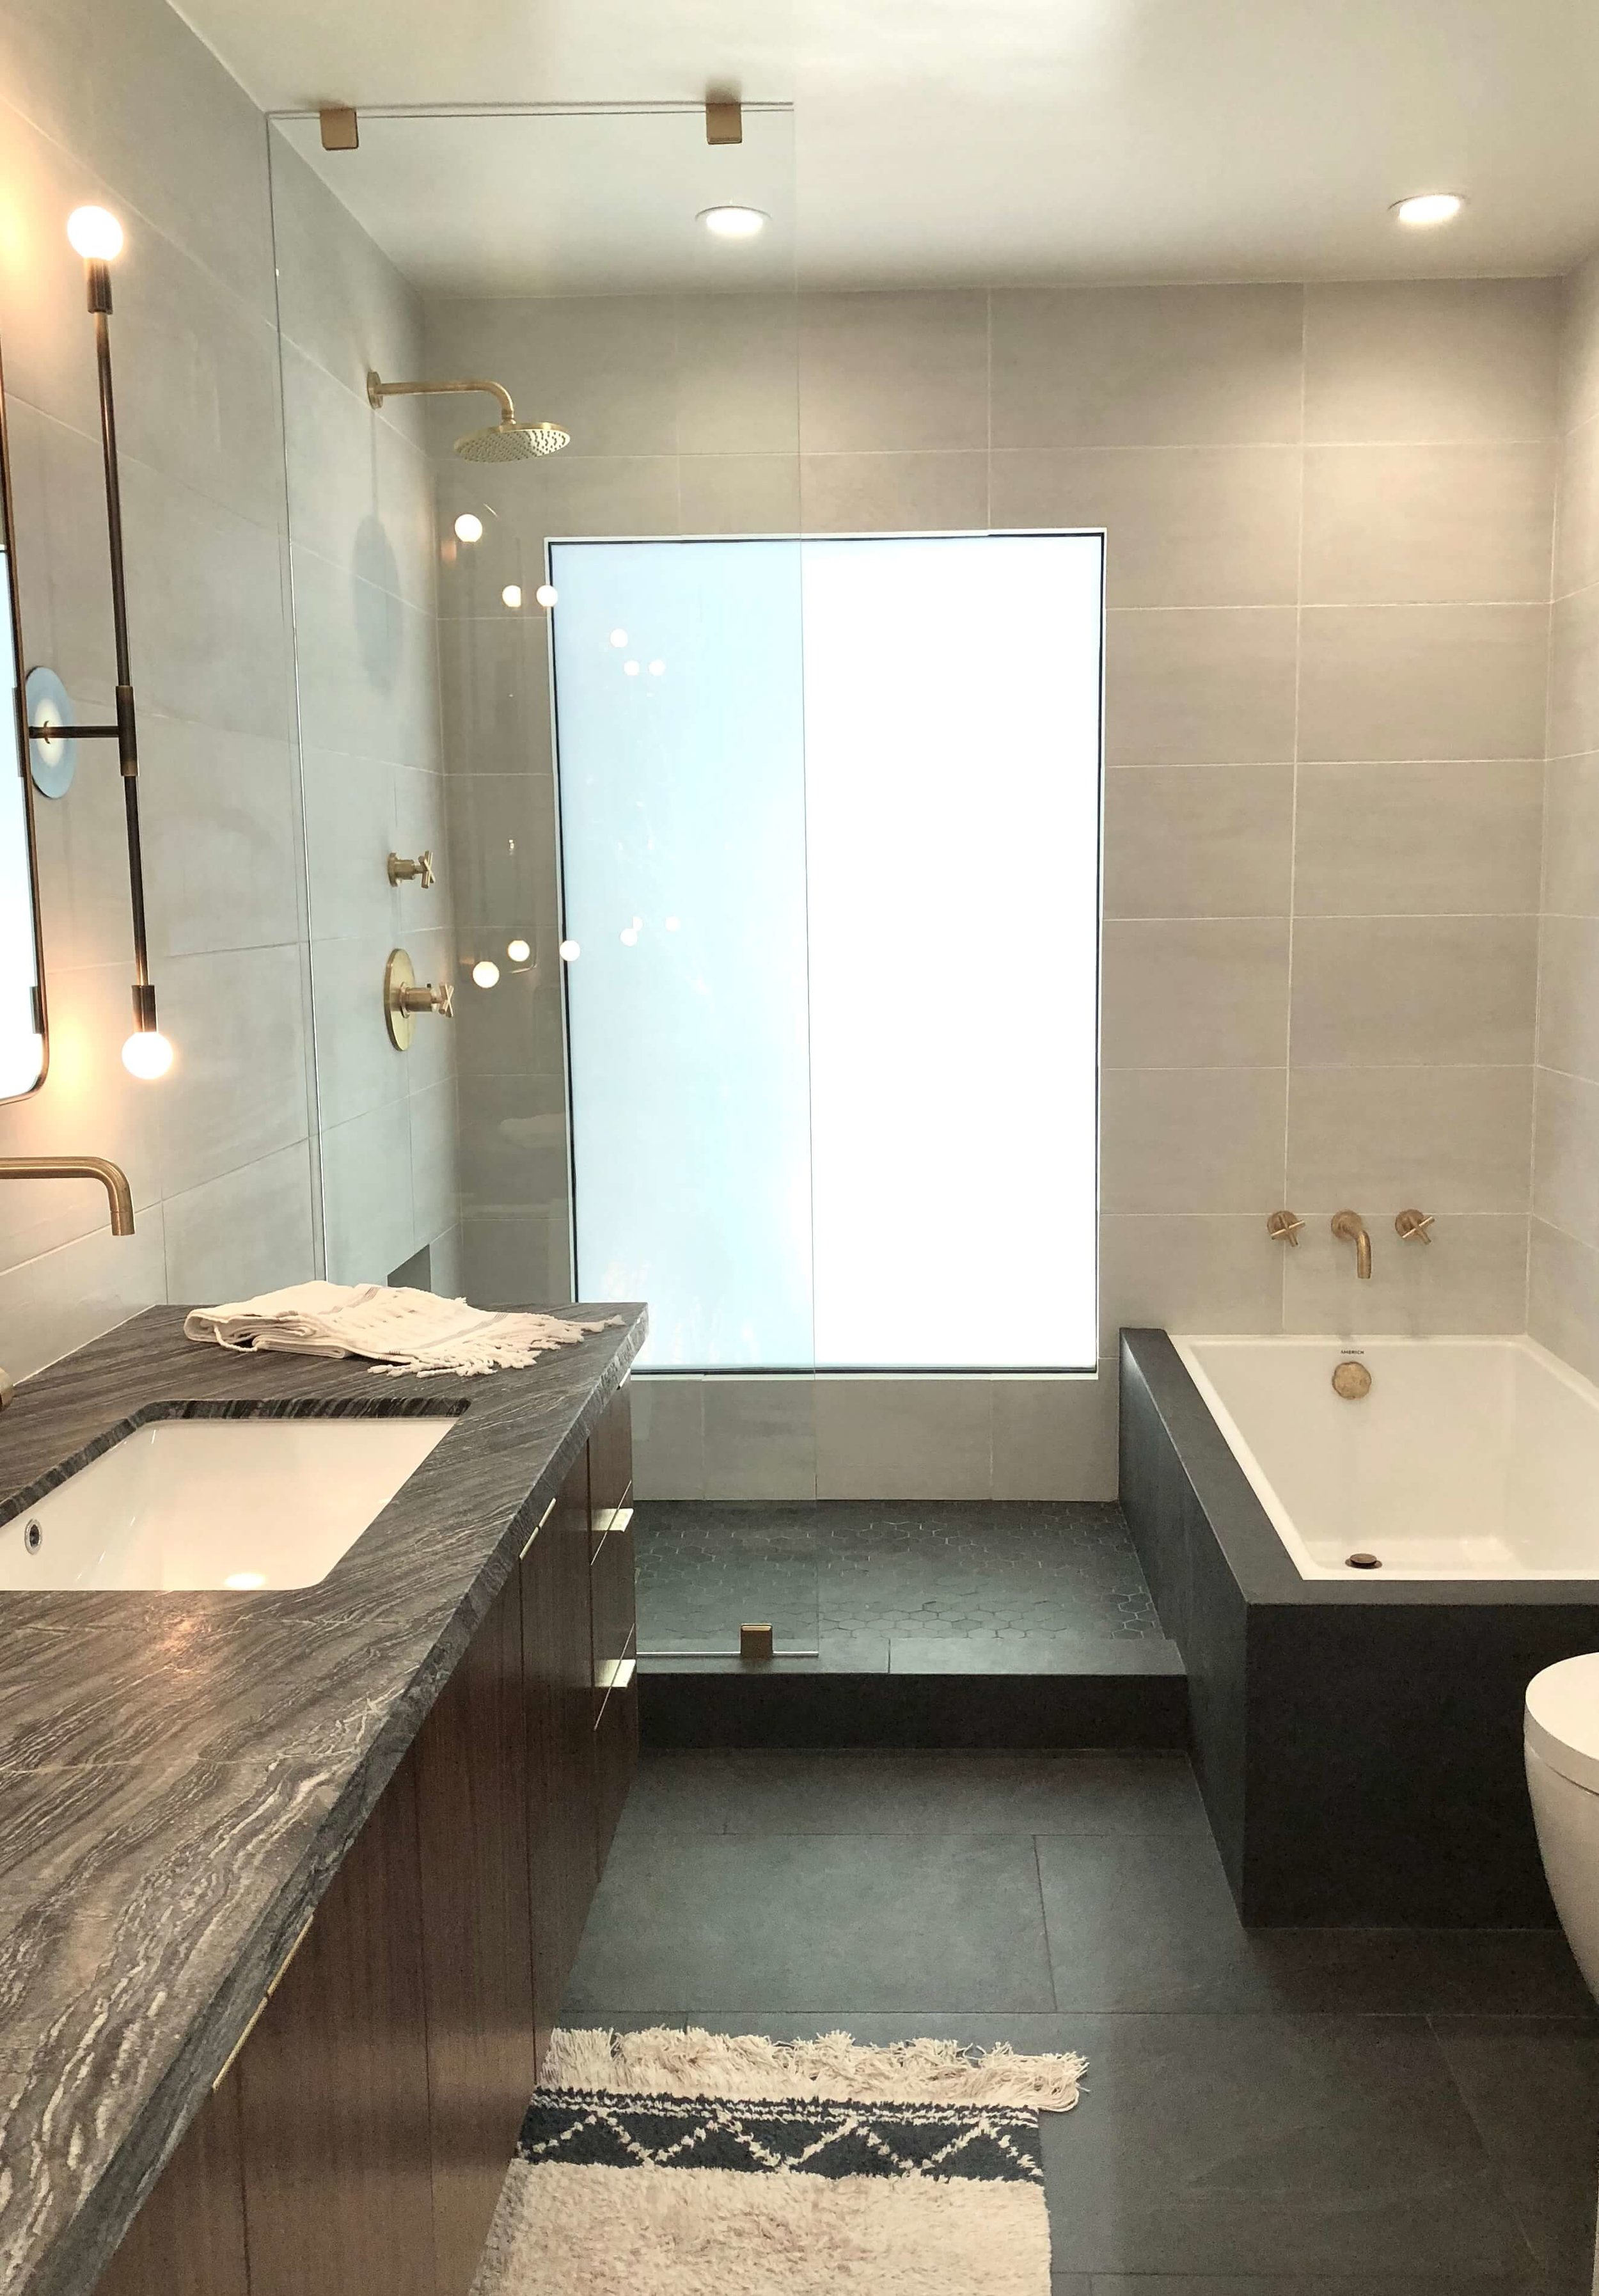 Tile runs through glass shower enclosure | Assembledge Architects | More on this  contemporary home here.